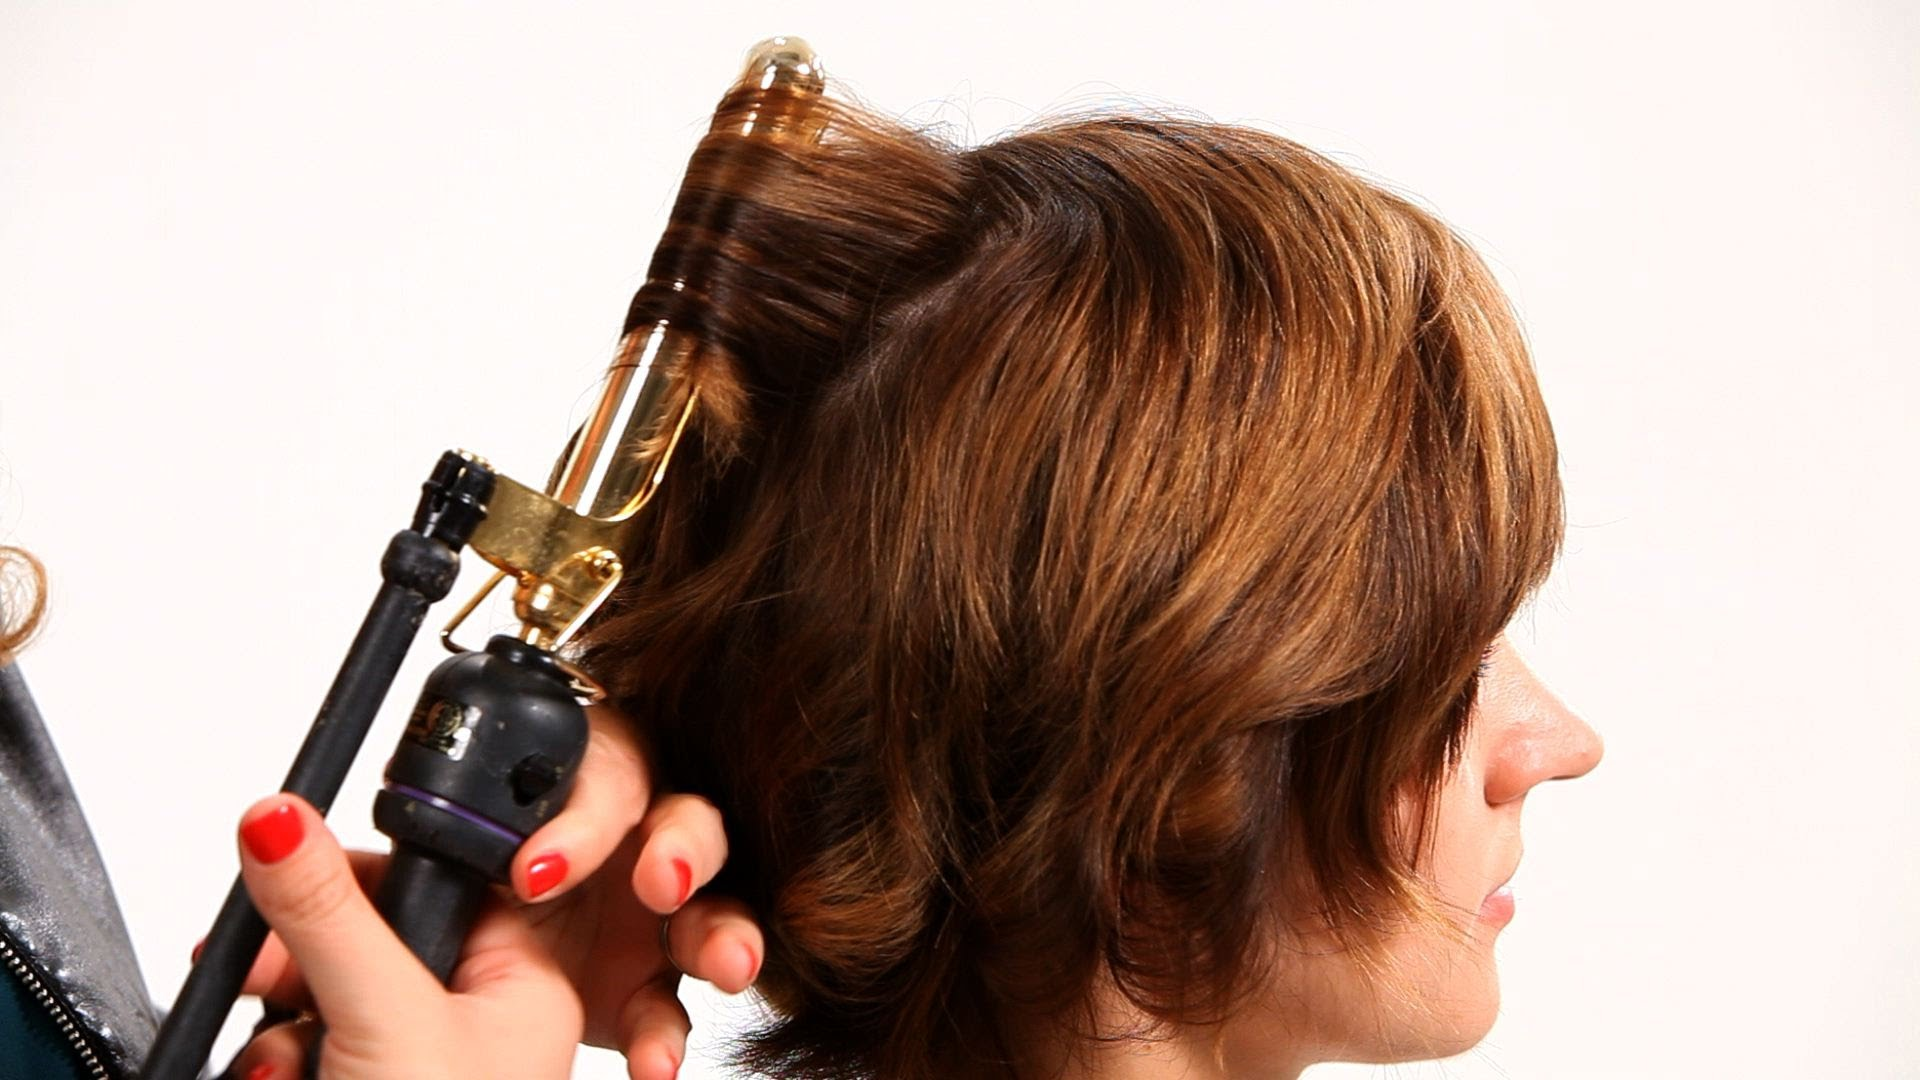 1 Hairstyles For Short Hair: Using Curling Iron On Short Hair Pt. 1